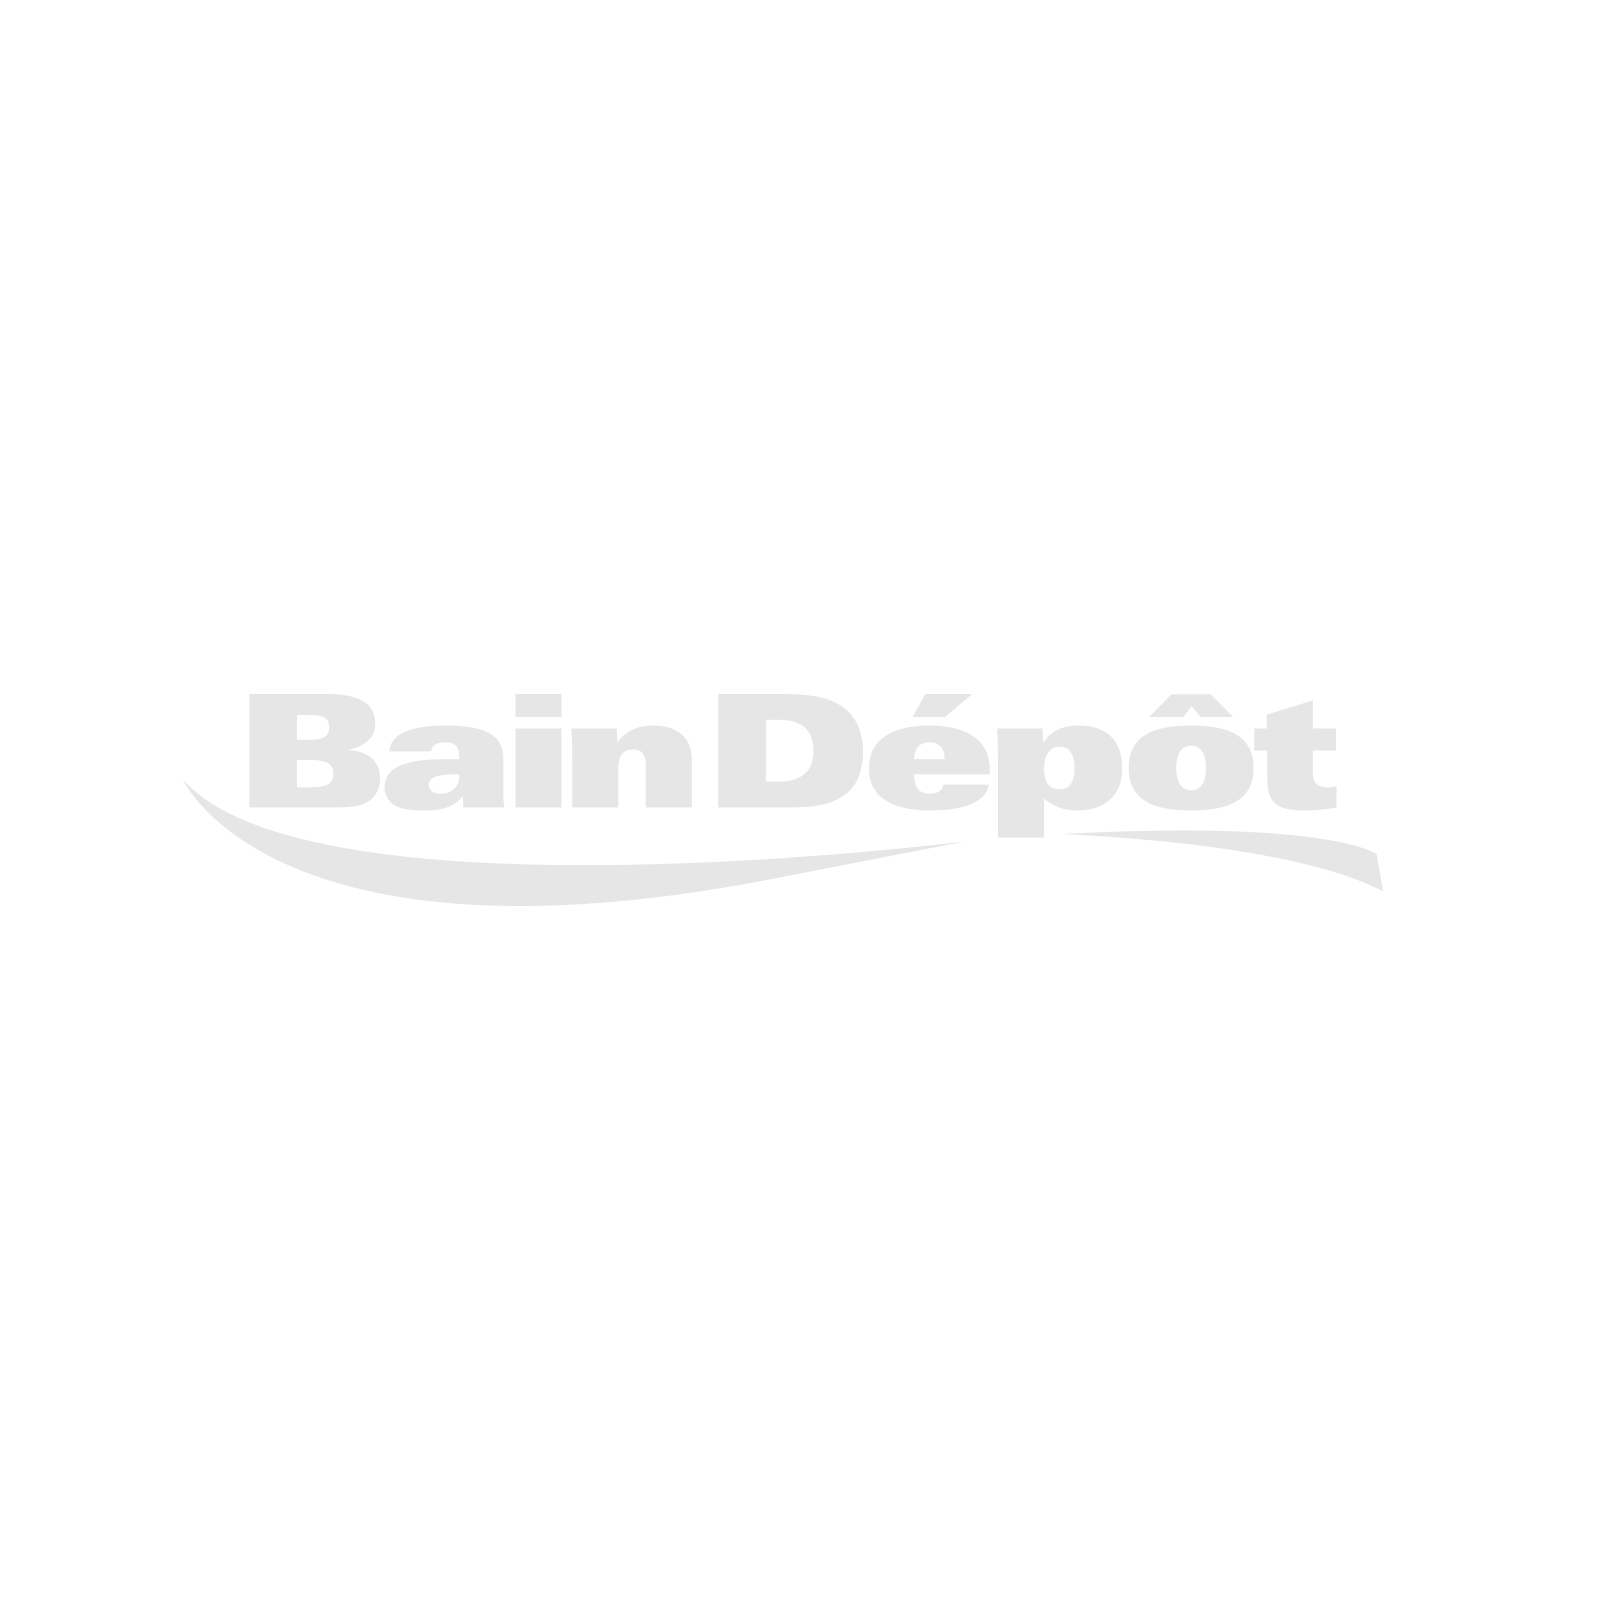 Undermount soap dispenser